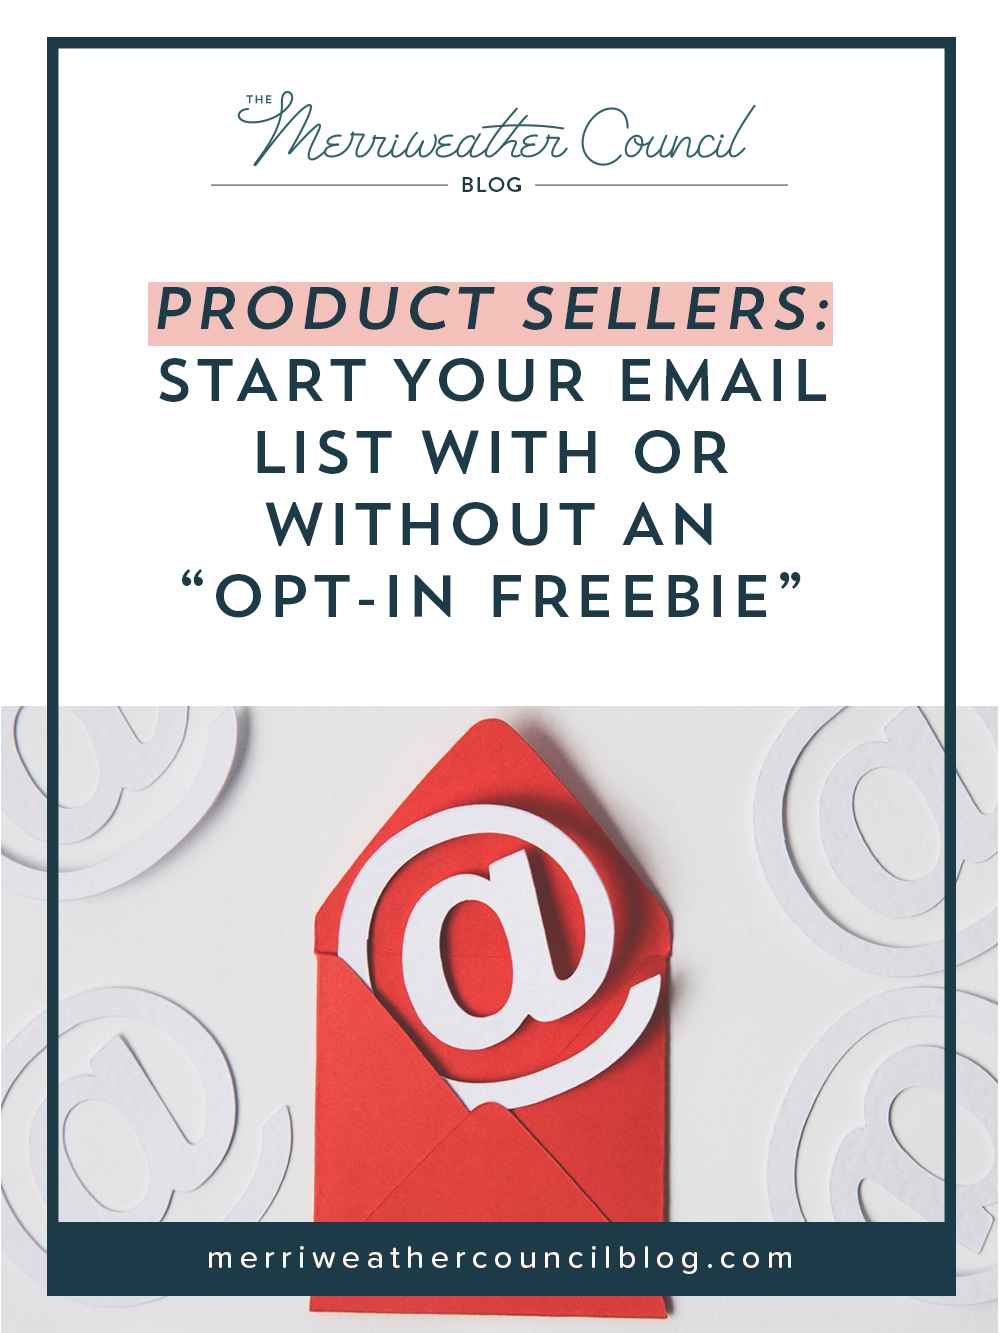 """Product Sellers: Start Your Email List with or WITHOUT an """"opt-in freebie"""" 